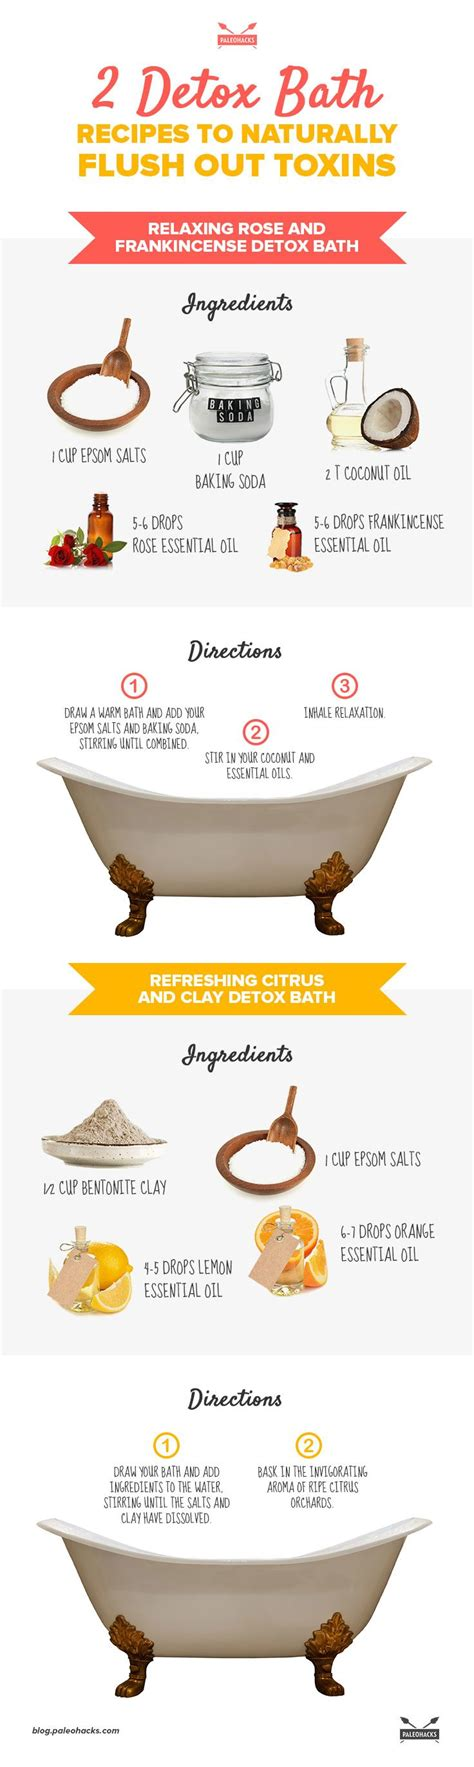 Flush Out Detox Naturally by 2 Detox Bath Recipes To Naturally Flush Out Toxins